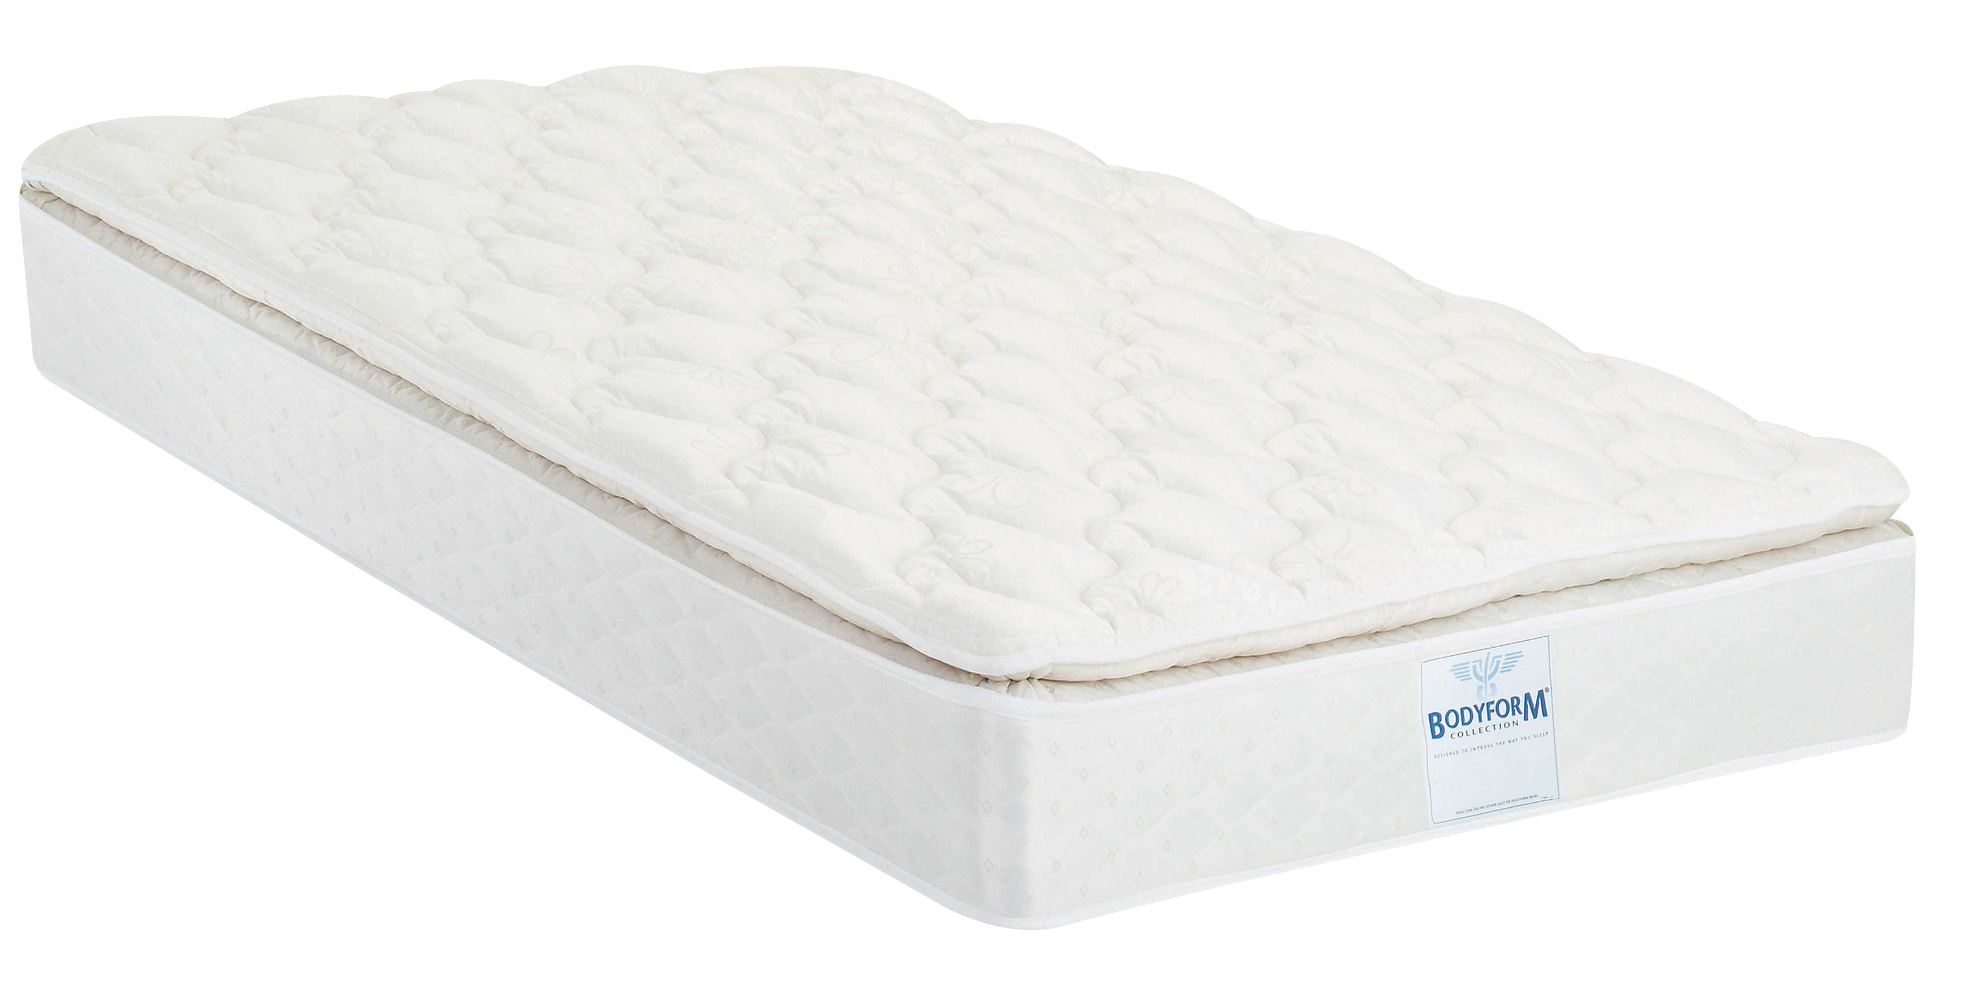 twin pillow series youtube sealy euro pillowtop edition posturepedic es classic anniversary set top mattress firm cushion